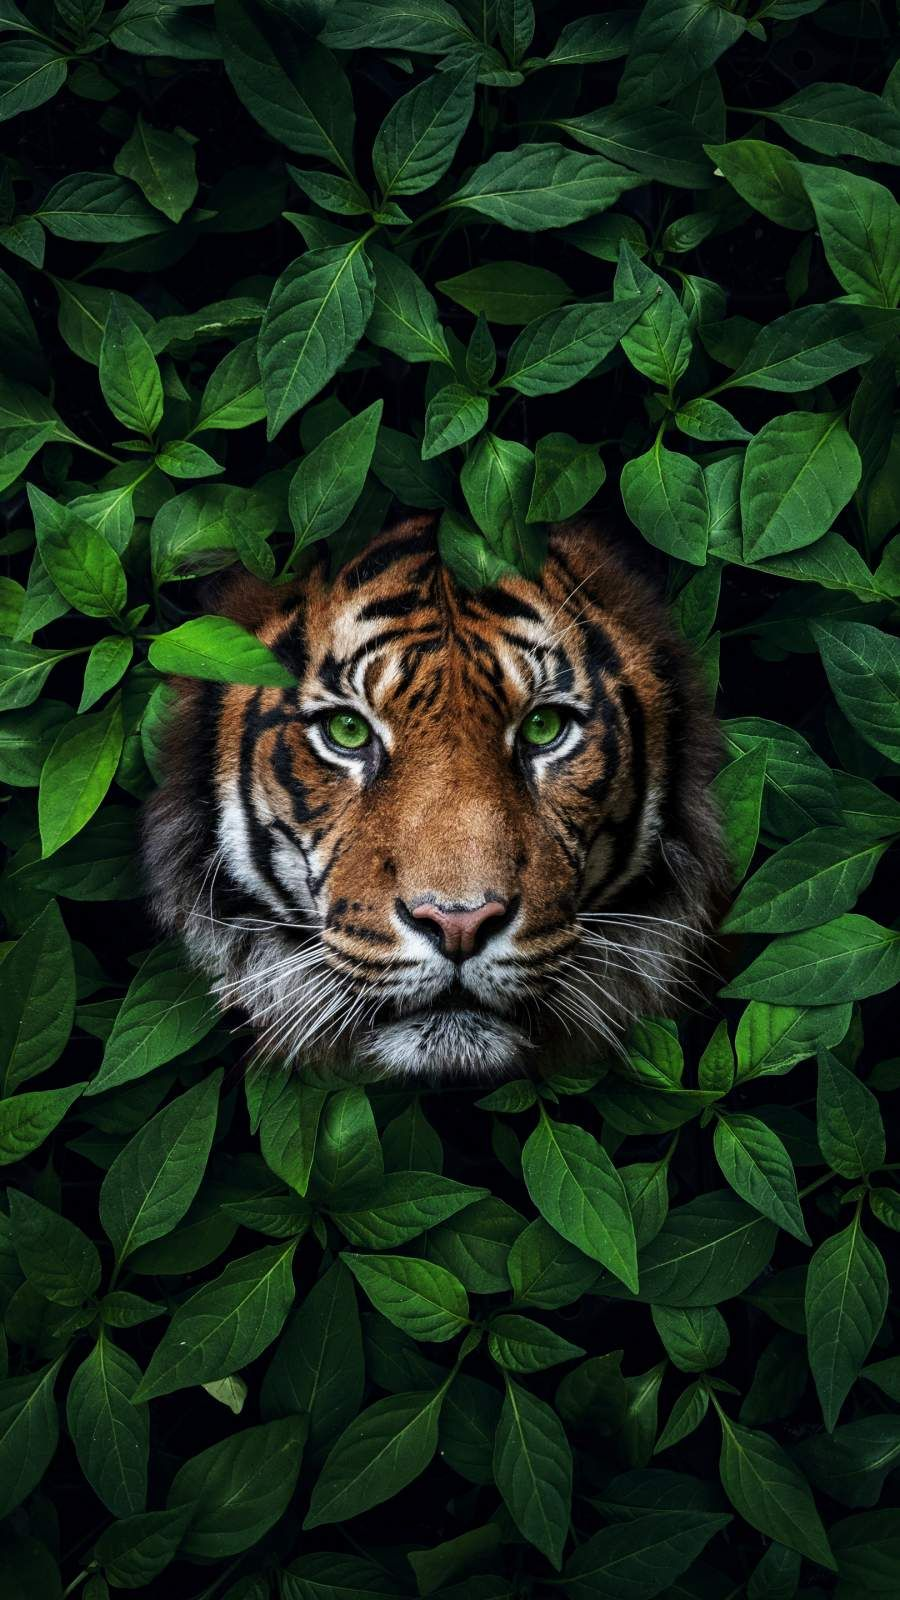 Green Eyes Tiger Iphone Wallpaper Wild Animal Wallpaper Animal